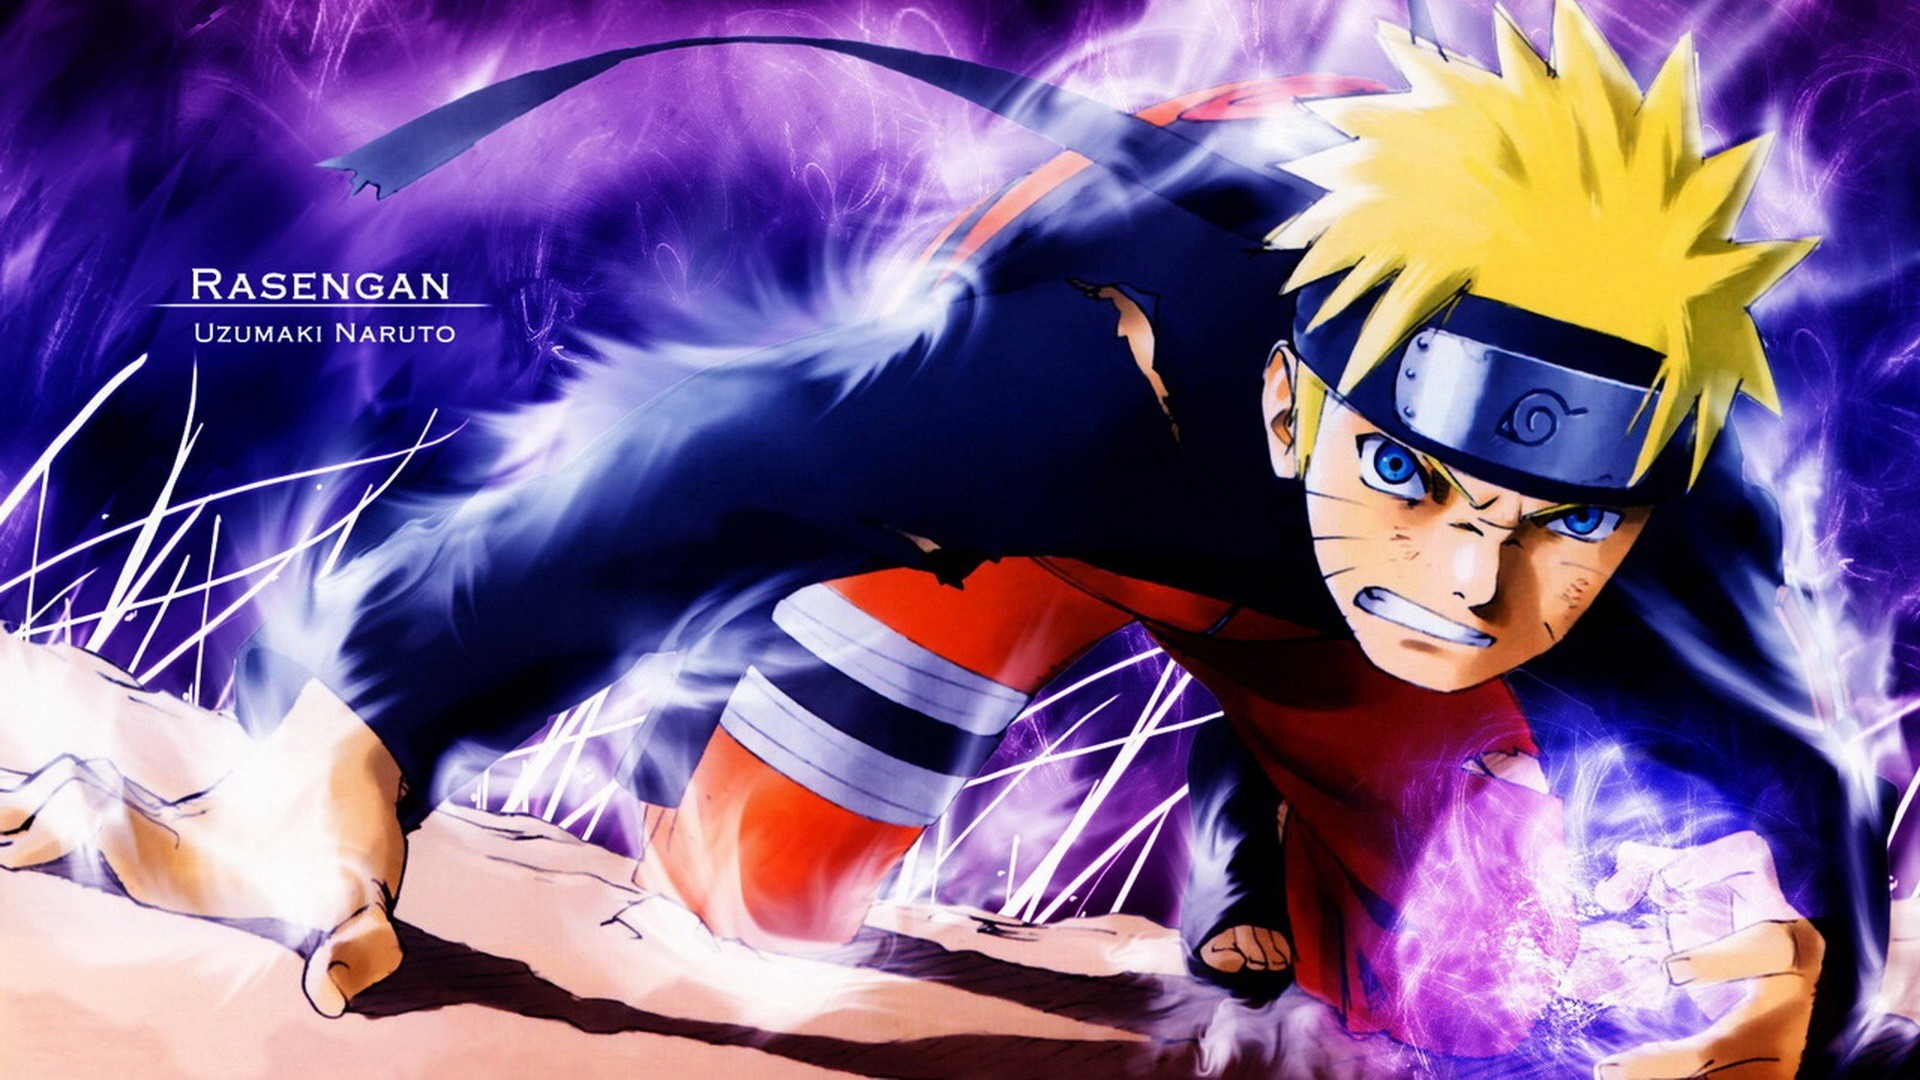 1920x1080 Sample Cool Naruto Wallpapers Lighting Decoration Ideas Motive Background  Adjustable